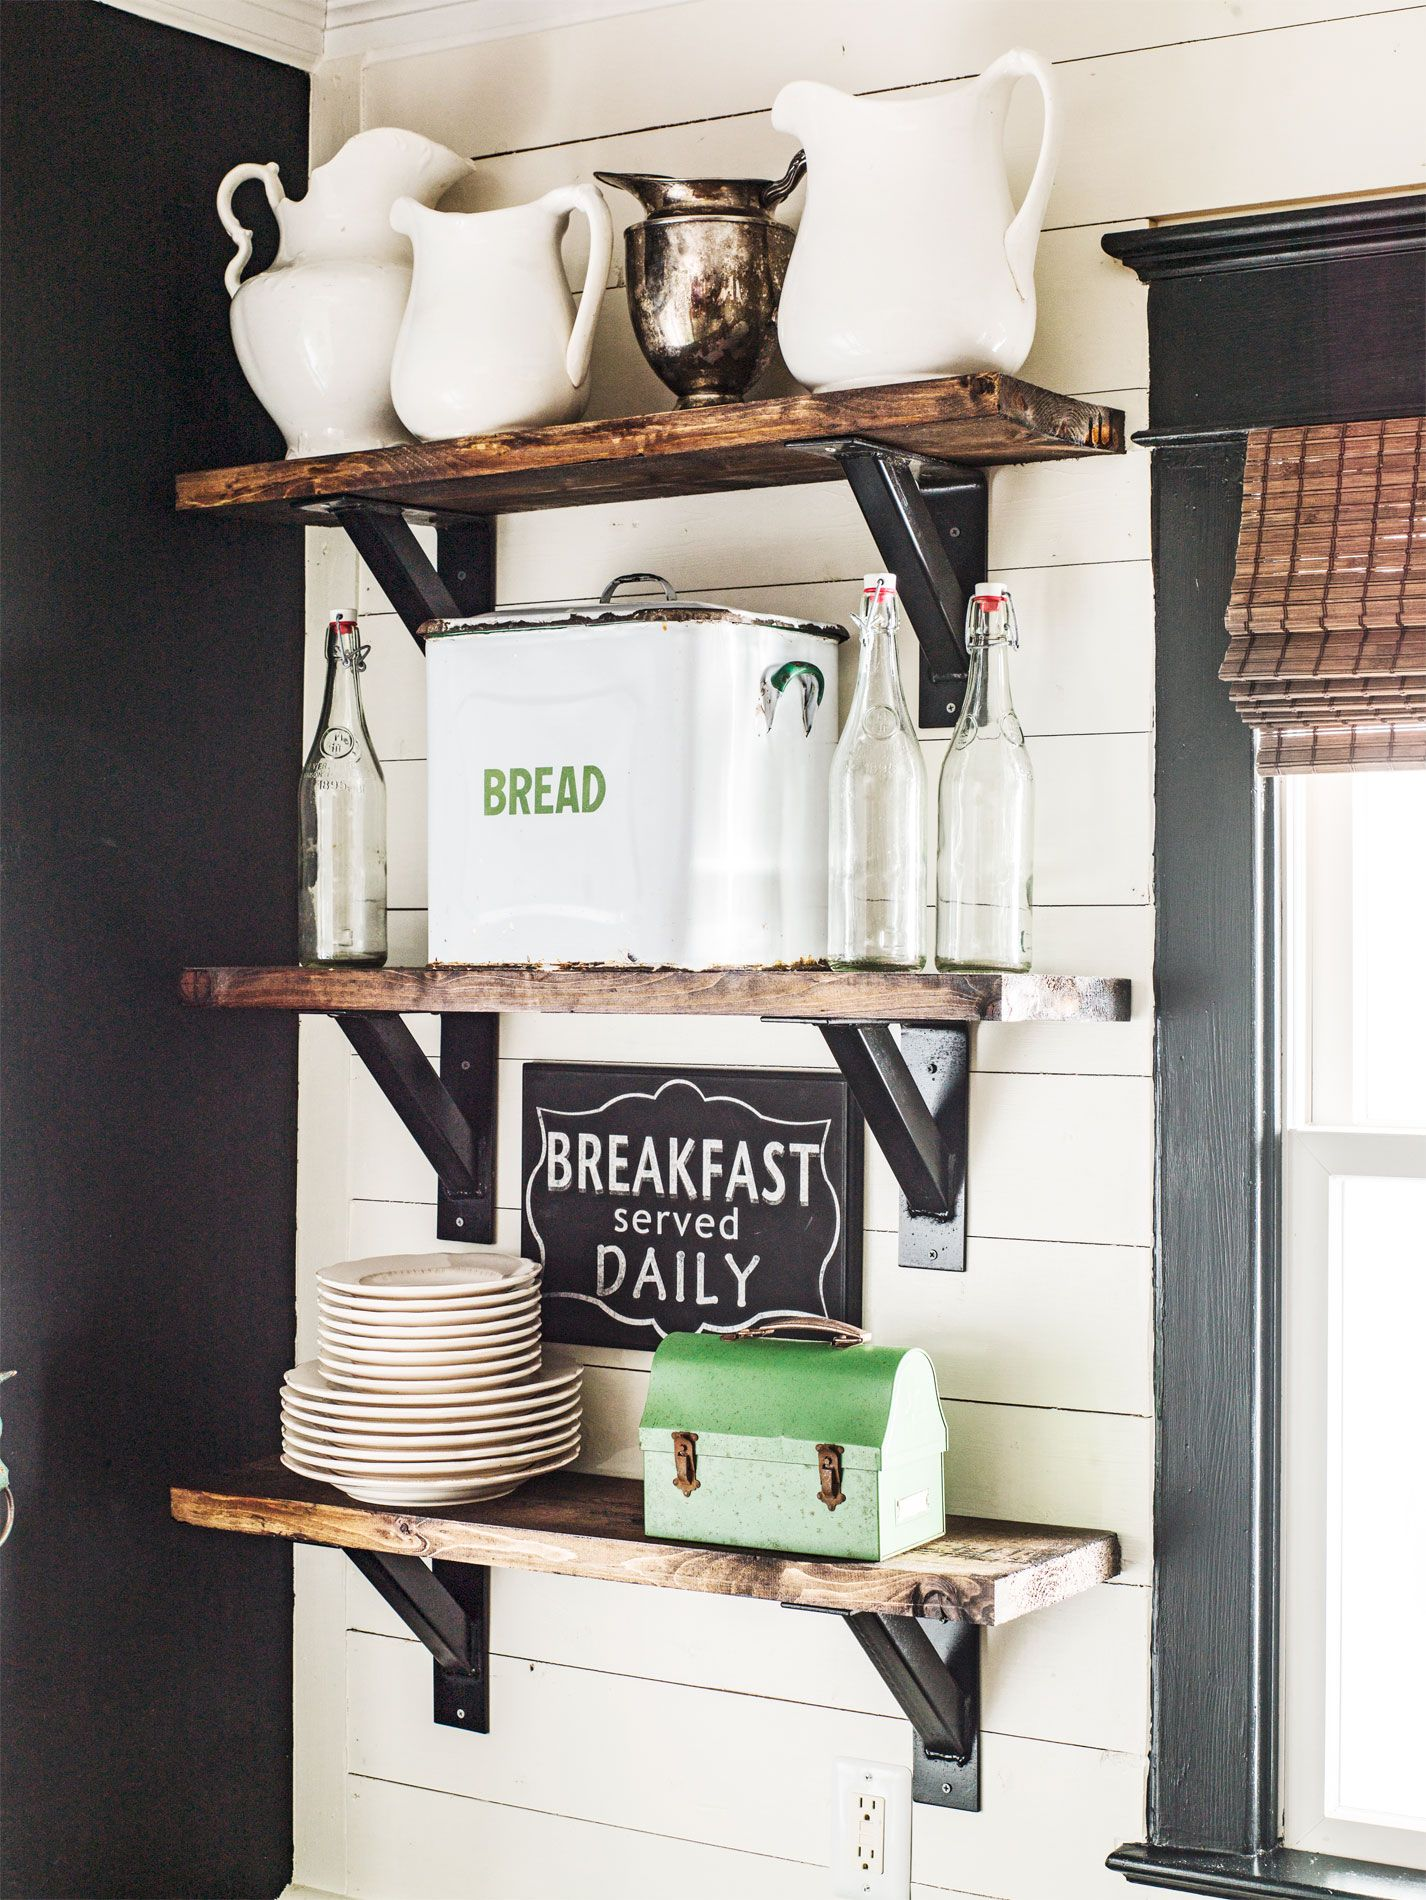 Rustic Kitchen Shelving 18 Vintage Decorating Ideas From A 1934 Farmhouse Open Shelving